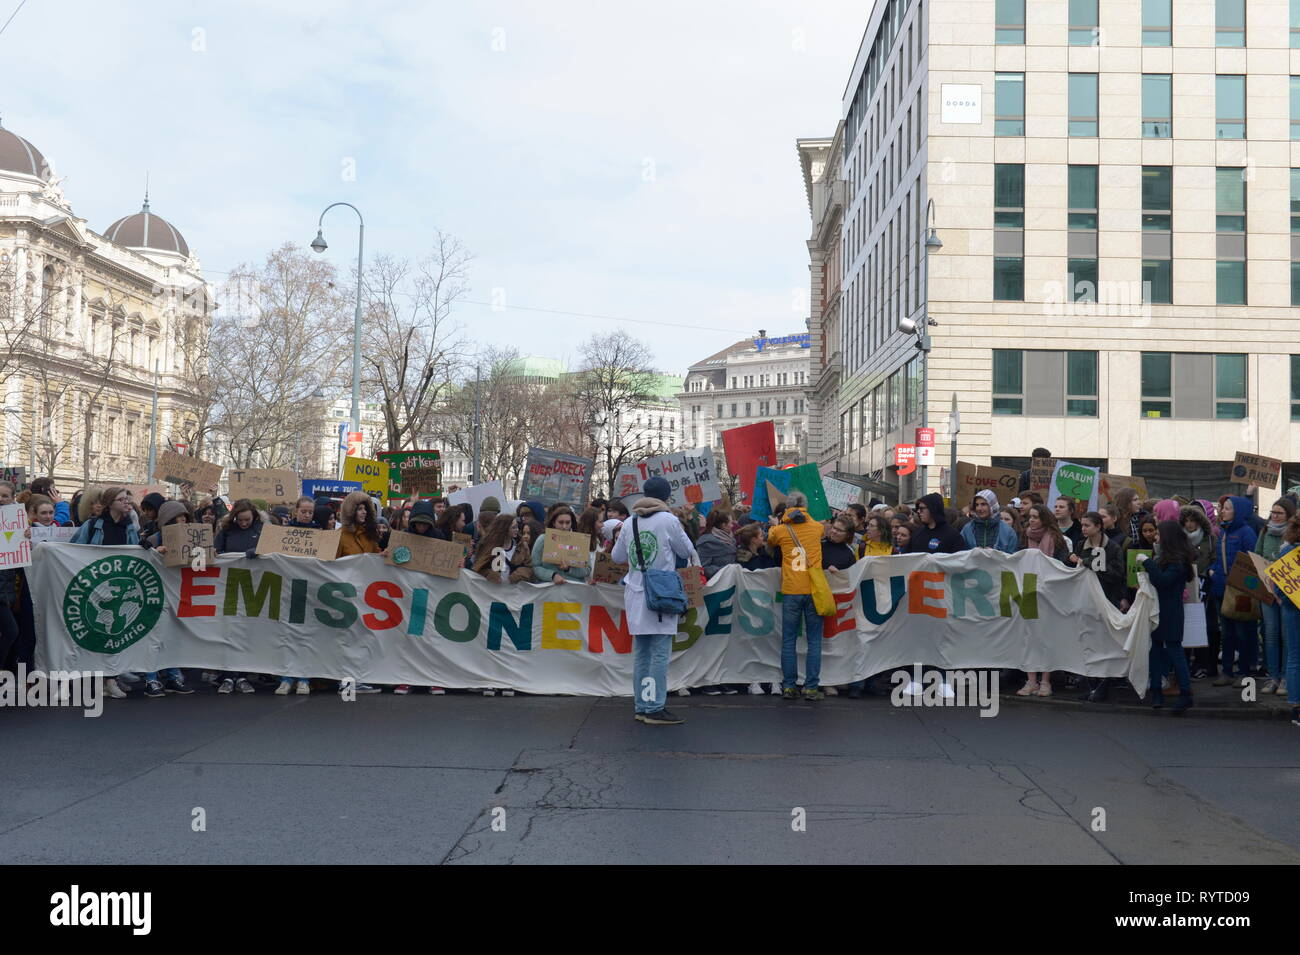 Vienna, Austria. 15 March 2019. Action Platform 'Fridays for Future' 'Global Climate Change' for a sustainable future, healthy environment, courageous climate policy, global climate justice and food security. Credit: Franz Perc / Alamy Live News - Stock Image